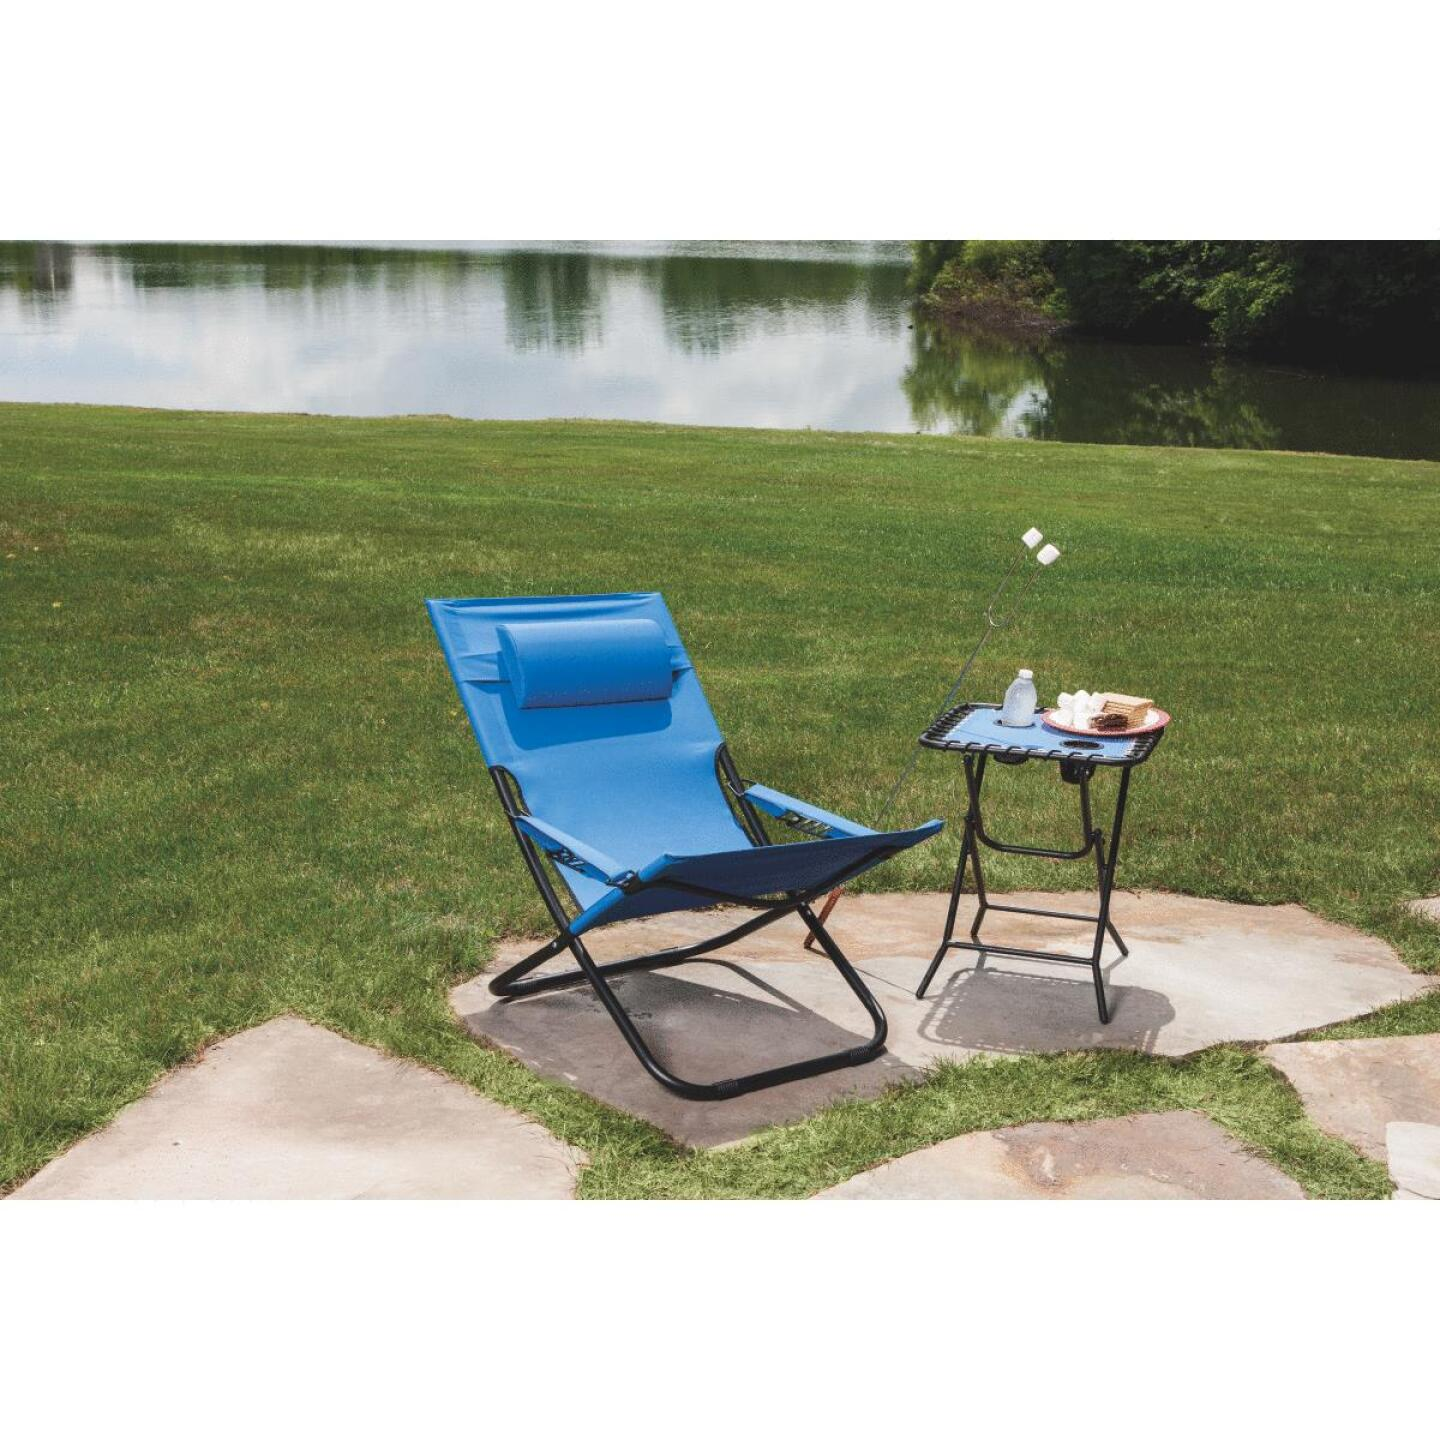 Outdoor Expressions Folding Blue Hammock Chair with Headrest Image 4